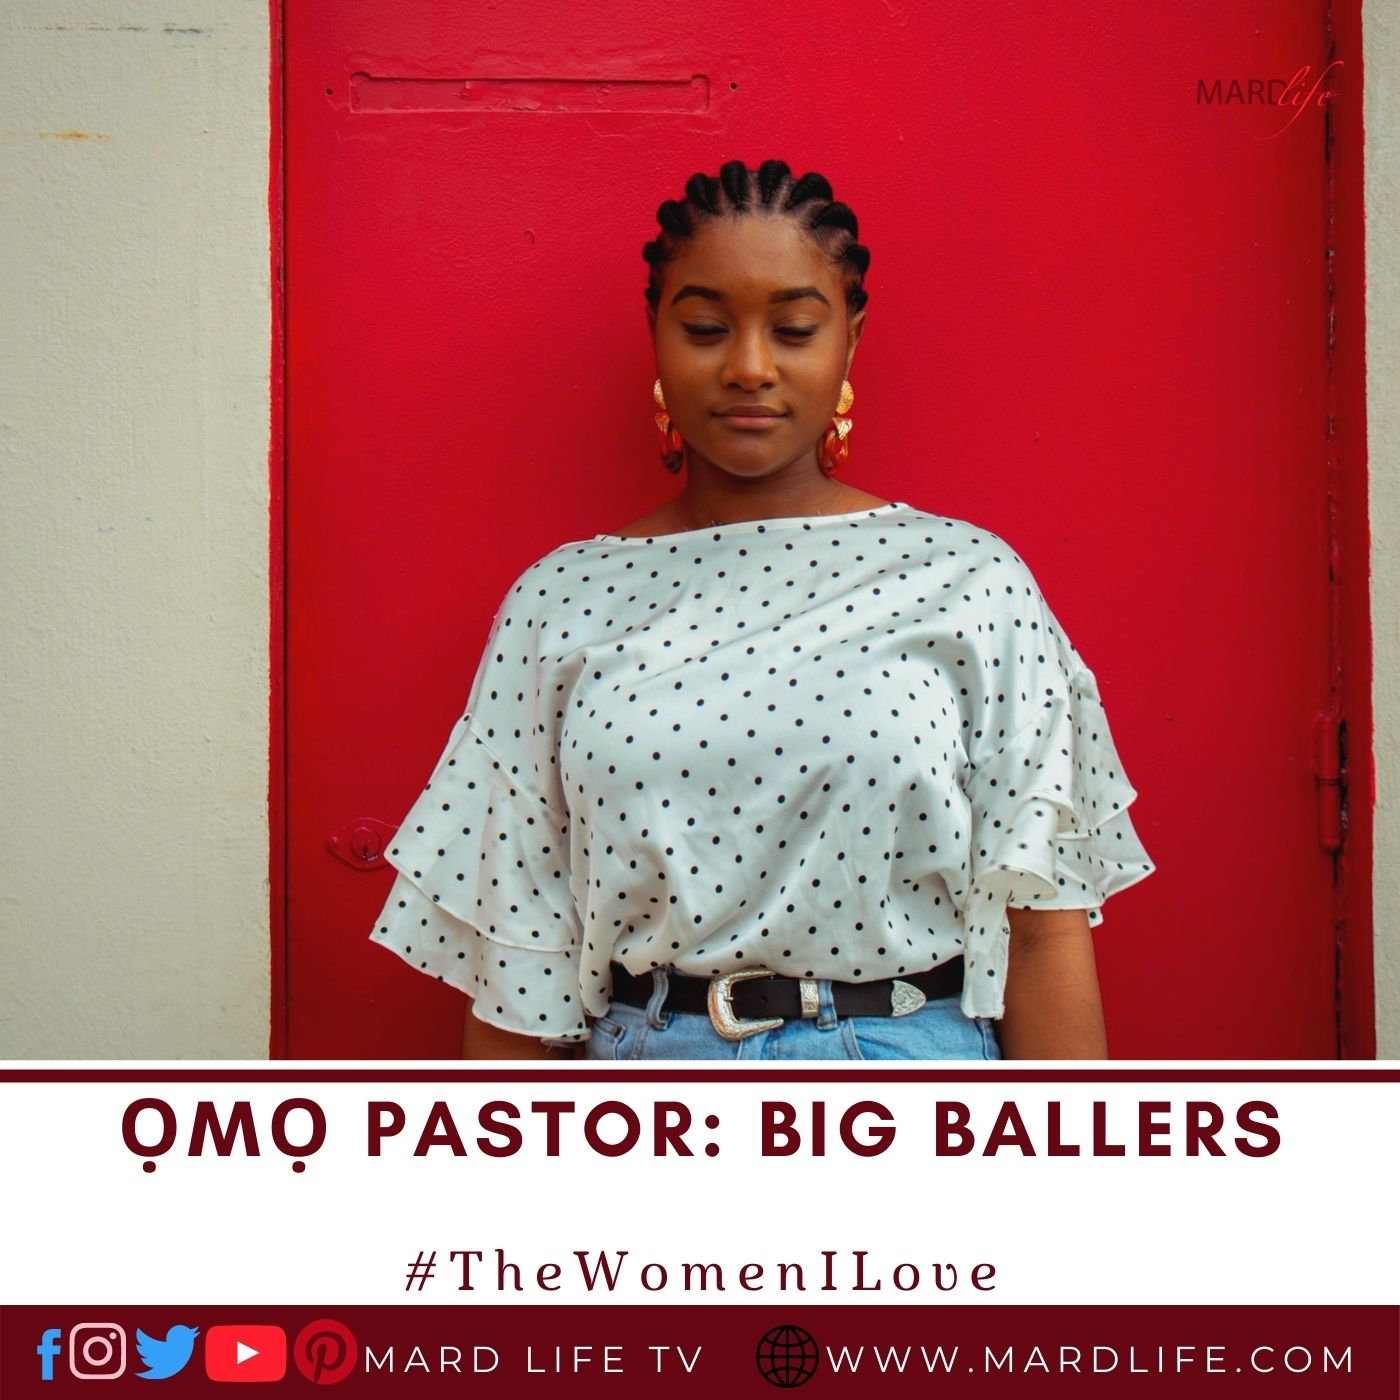 Omo Pastor, Ballers, Sports, Football, Players, Footballers, Football Team, Squad, Team, Visit, Visitors,